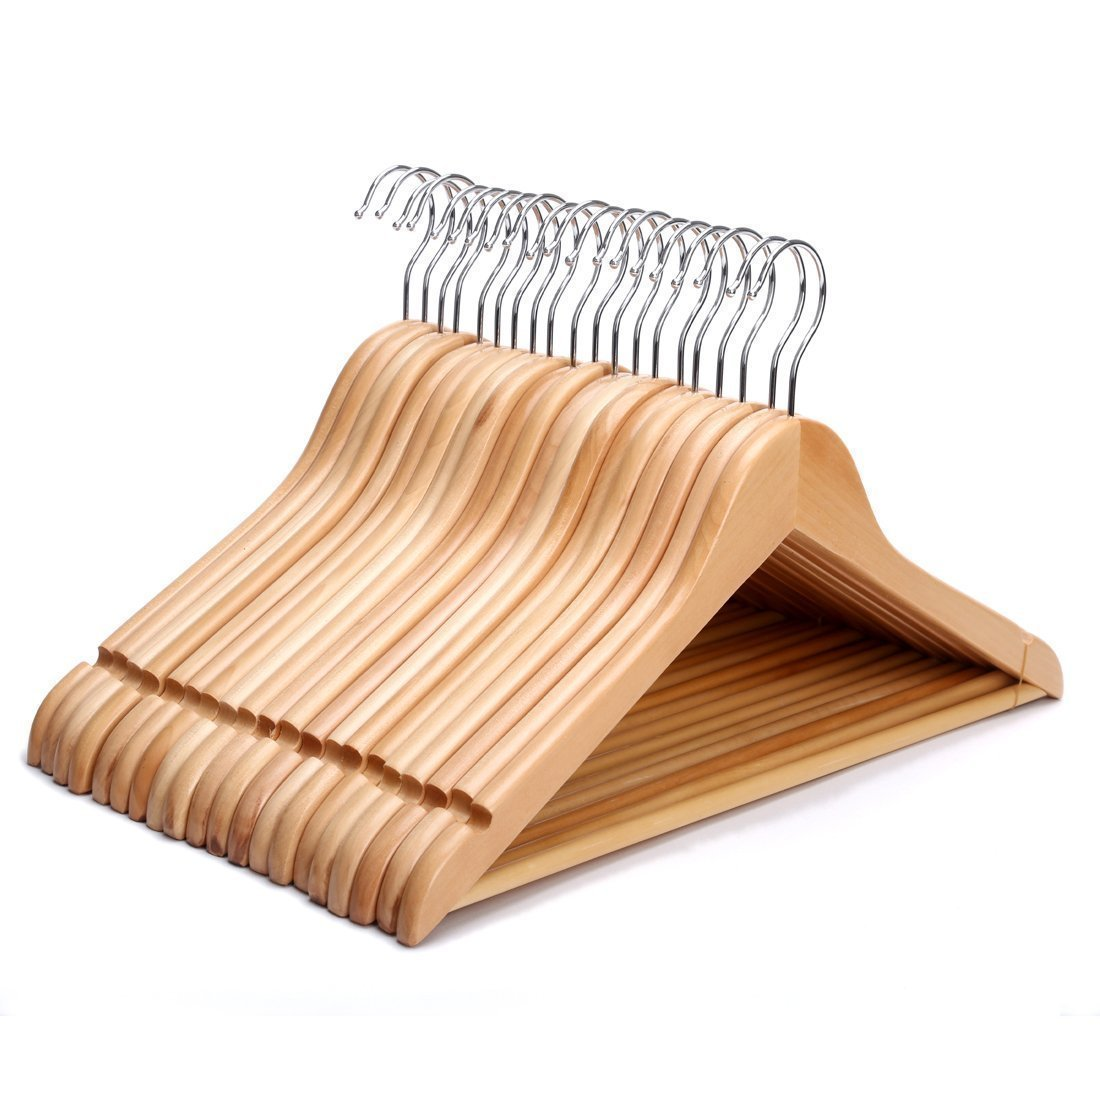 The Shopfitting Shop Eazilife 100 X Superior Wooden Clotheshangers Coat Hangers For Shops Homes With Trouser Bar Skirt Notches 44cm